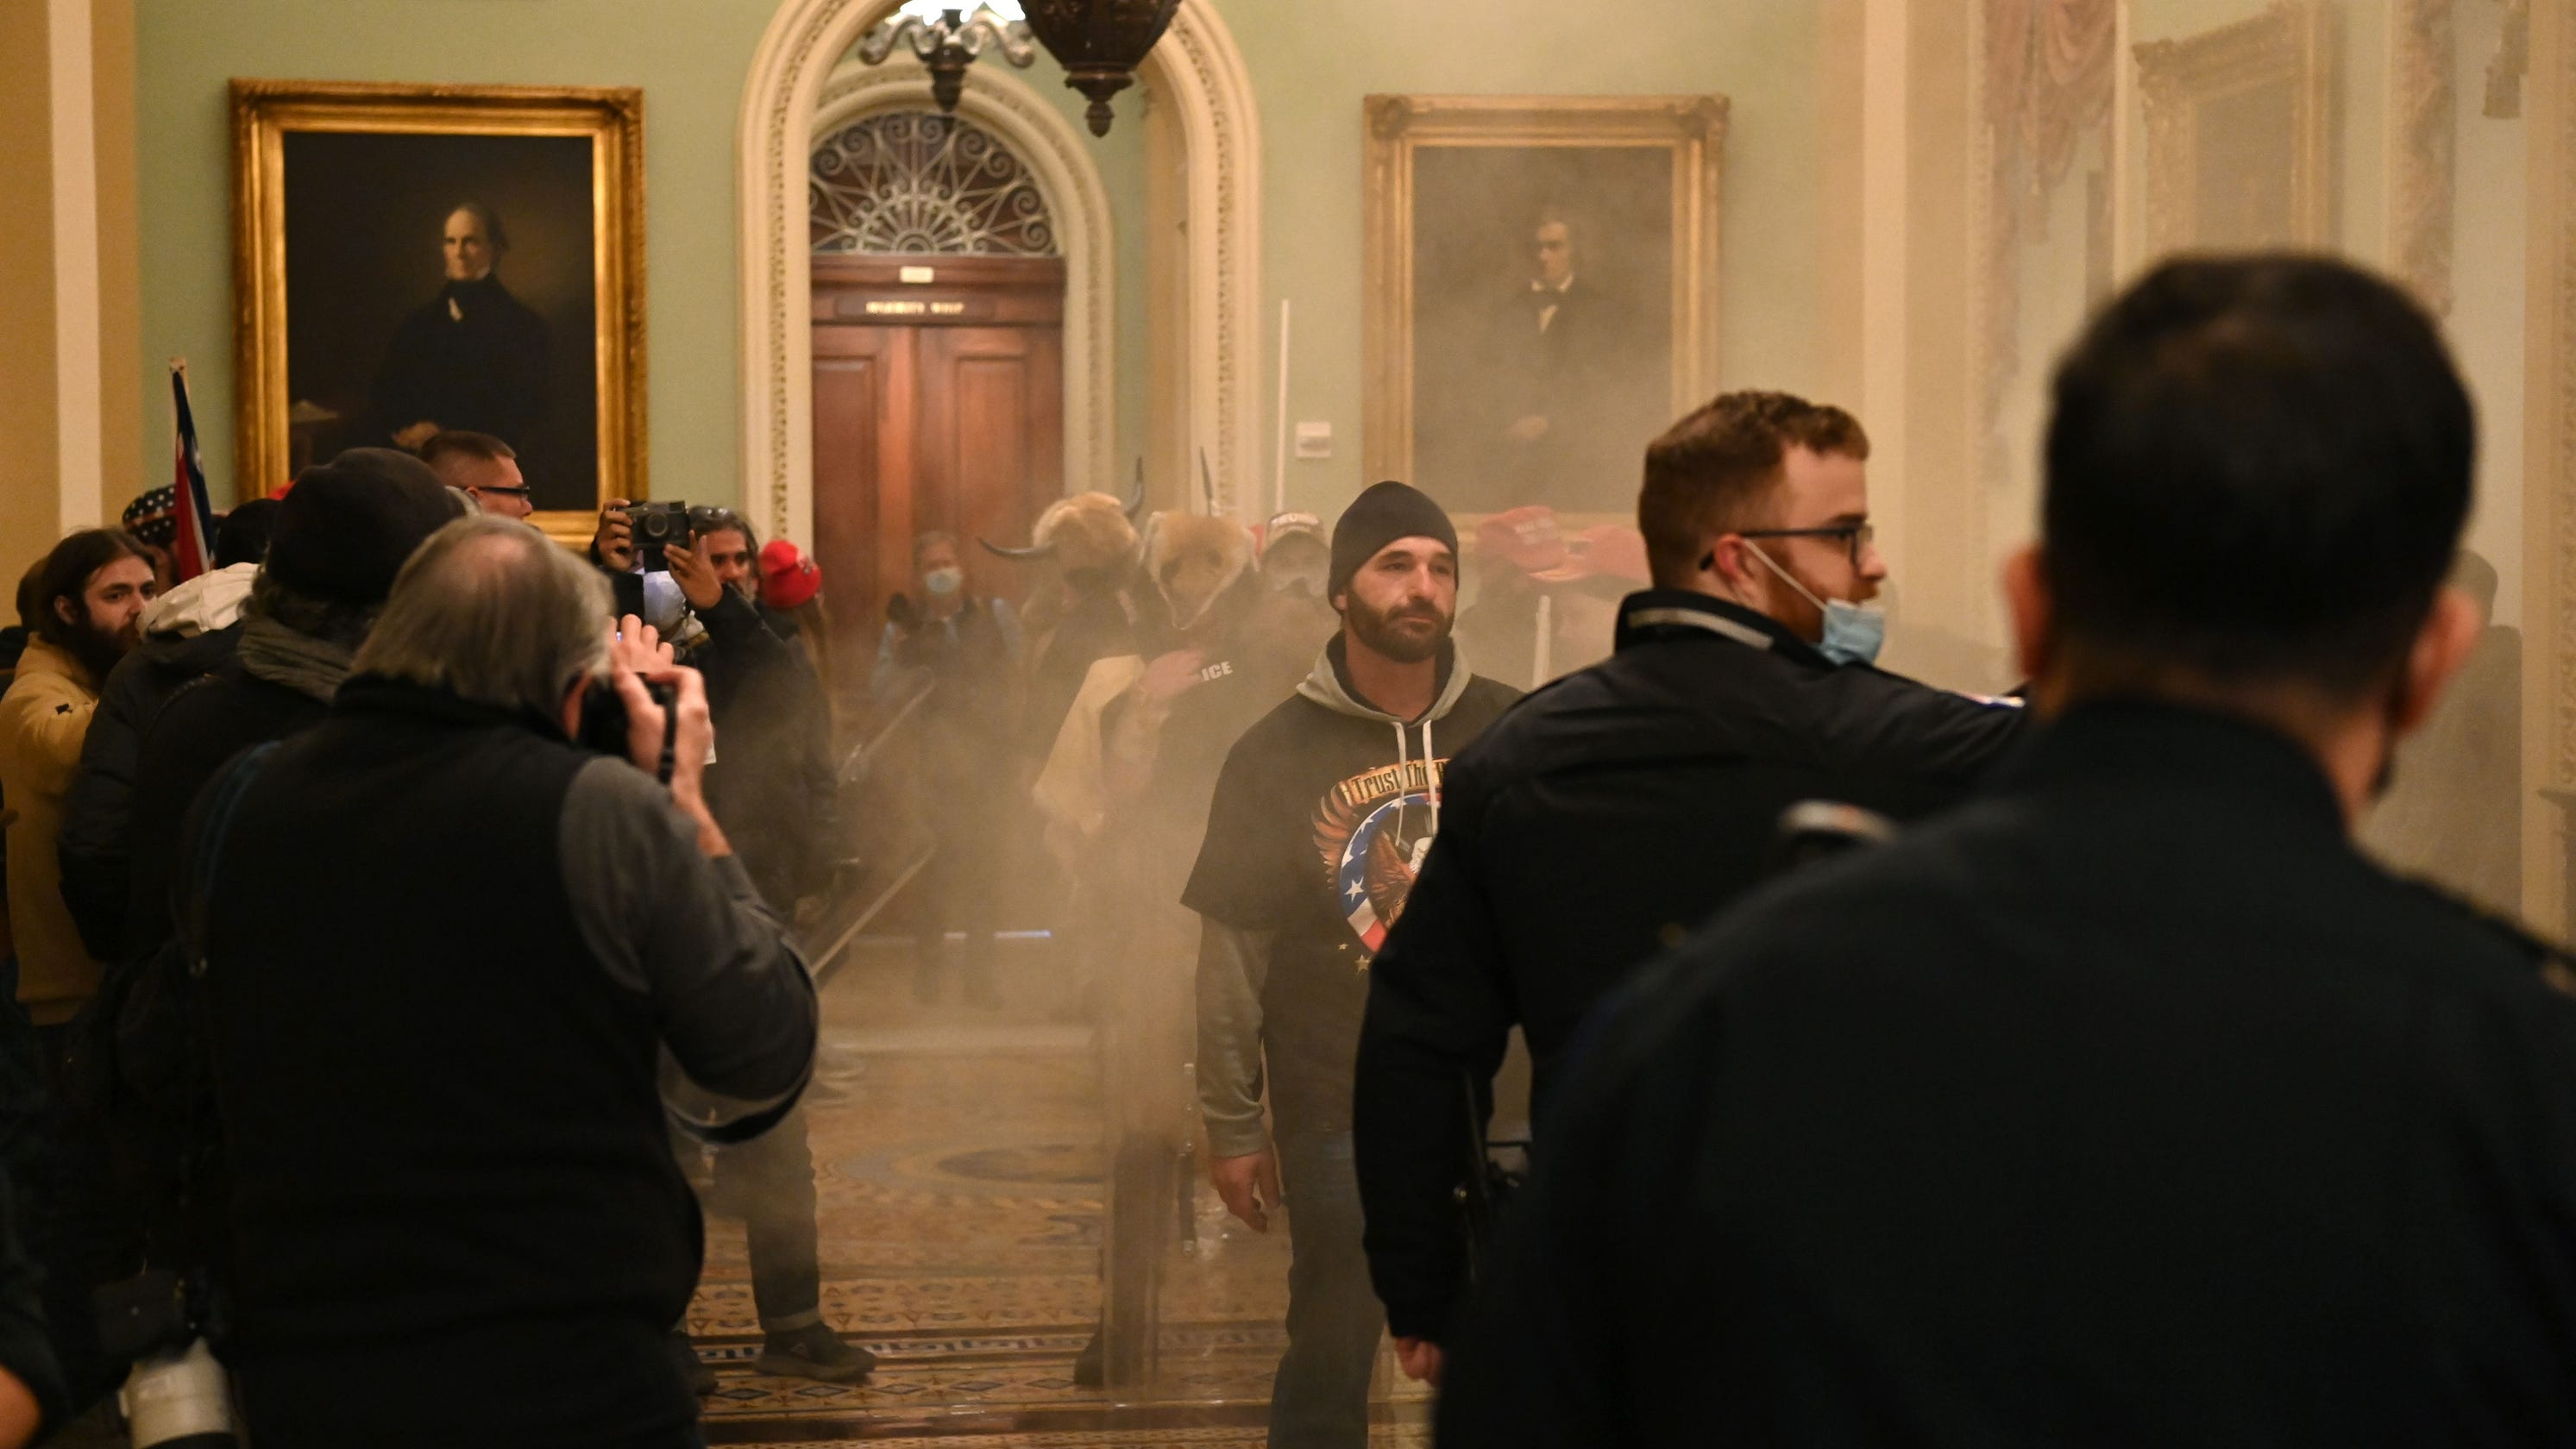 4 dead, 52 arrested, 14 police officers injured after pro-Trump rioters breach US Capitol